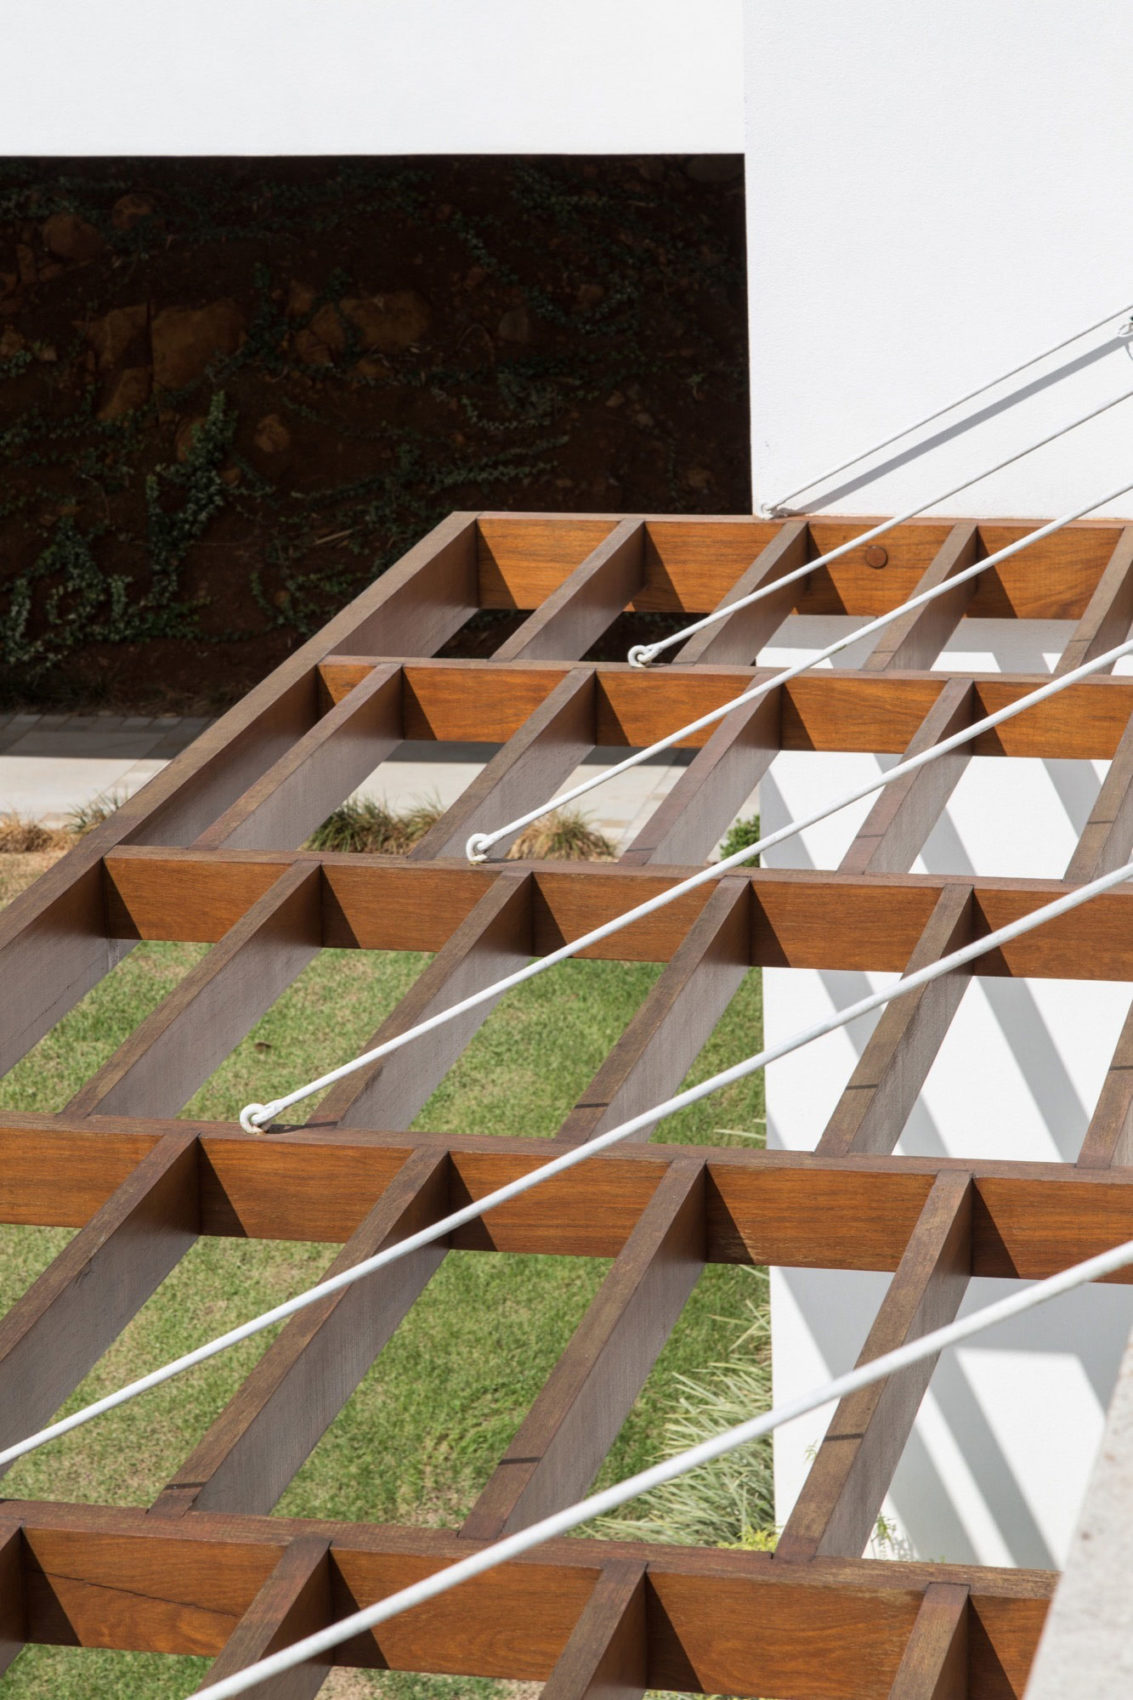 Casa 4.16.3 by Luciano Lerner Basso (7)